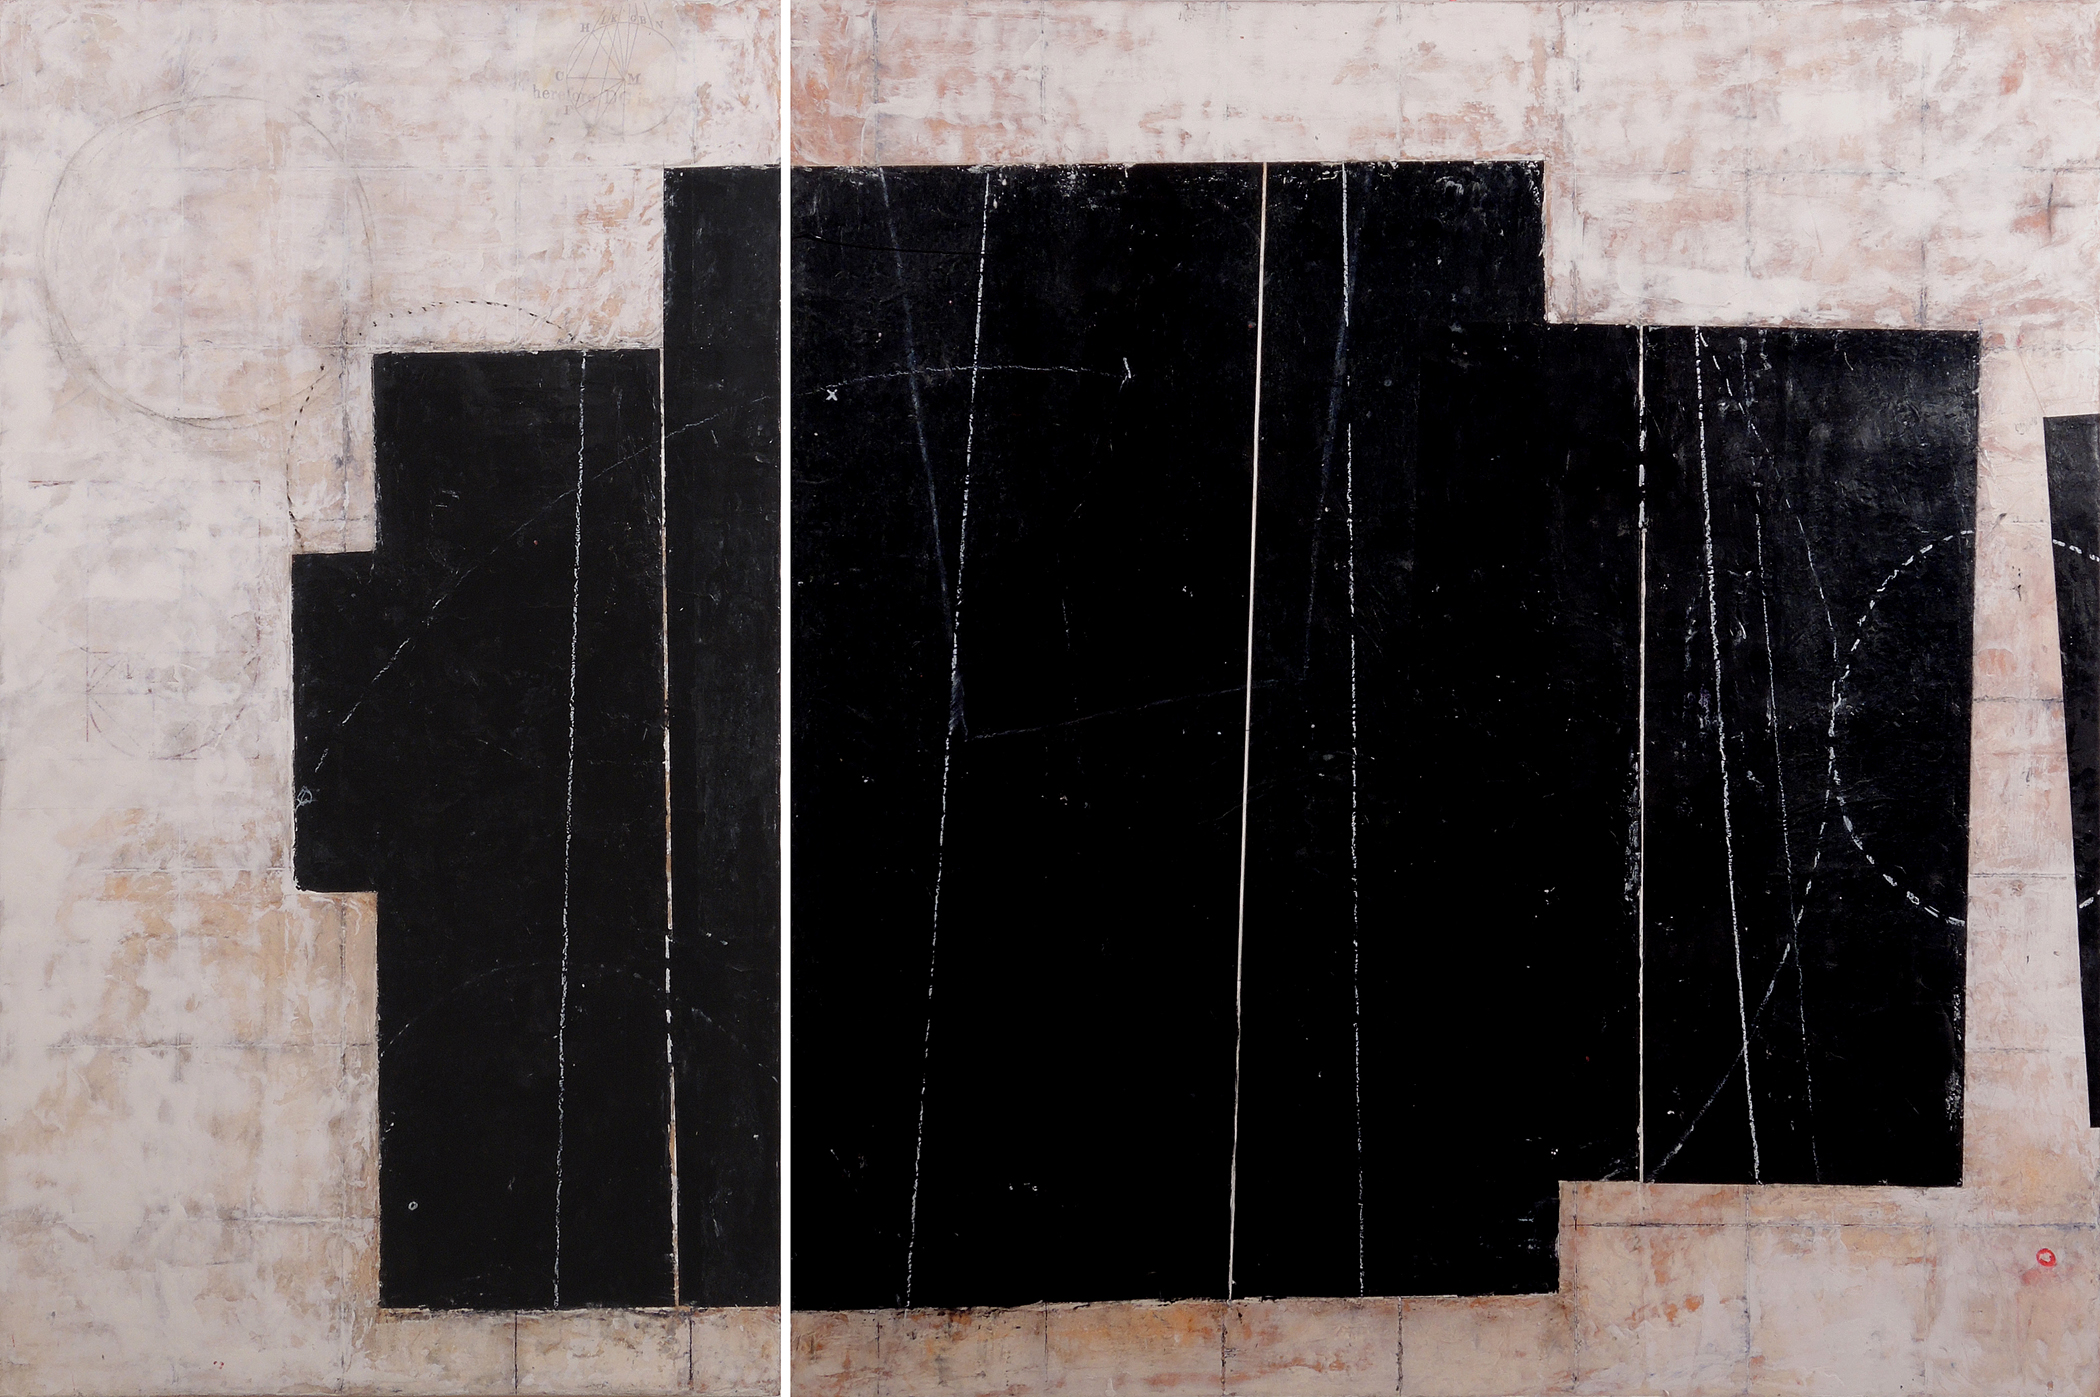 """Moby, 32"""" x 48"""" x 1.5"""", encaustic and oil on wood panel, 2013"""